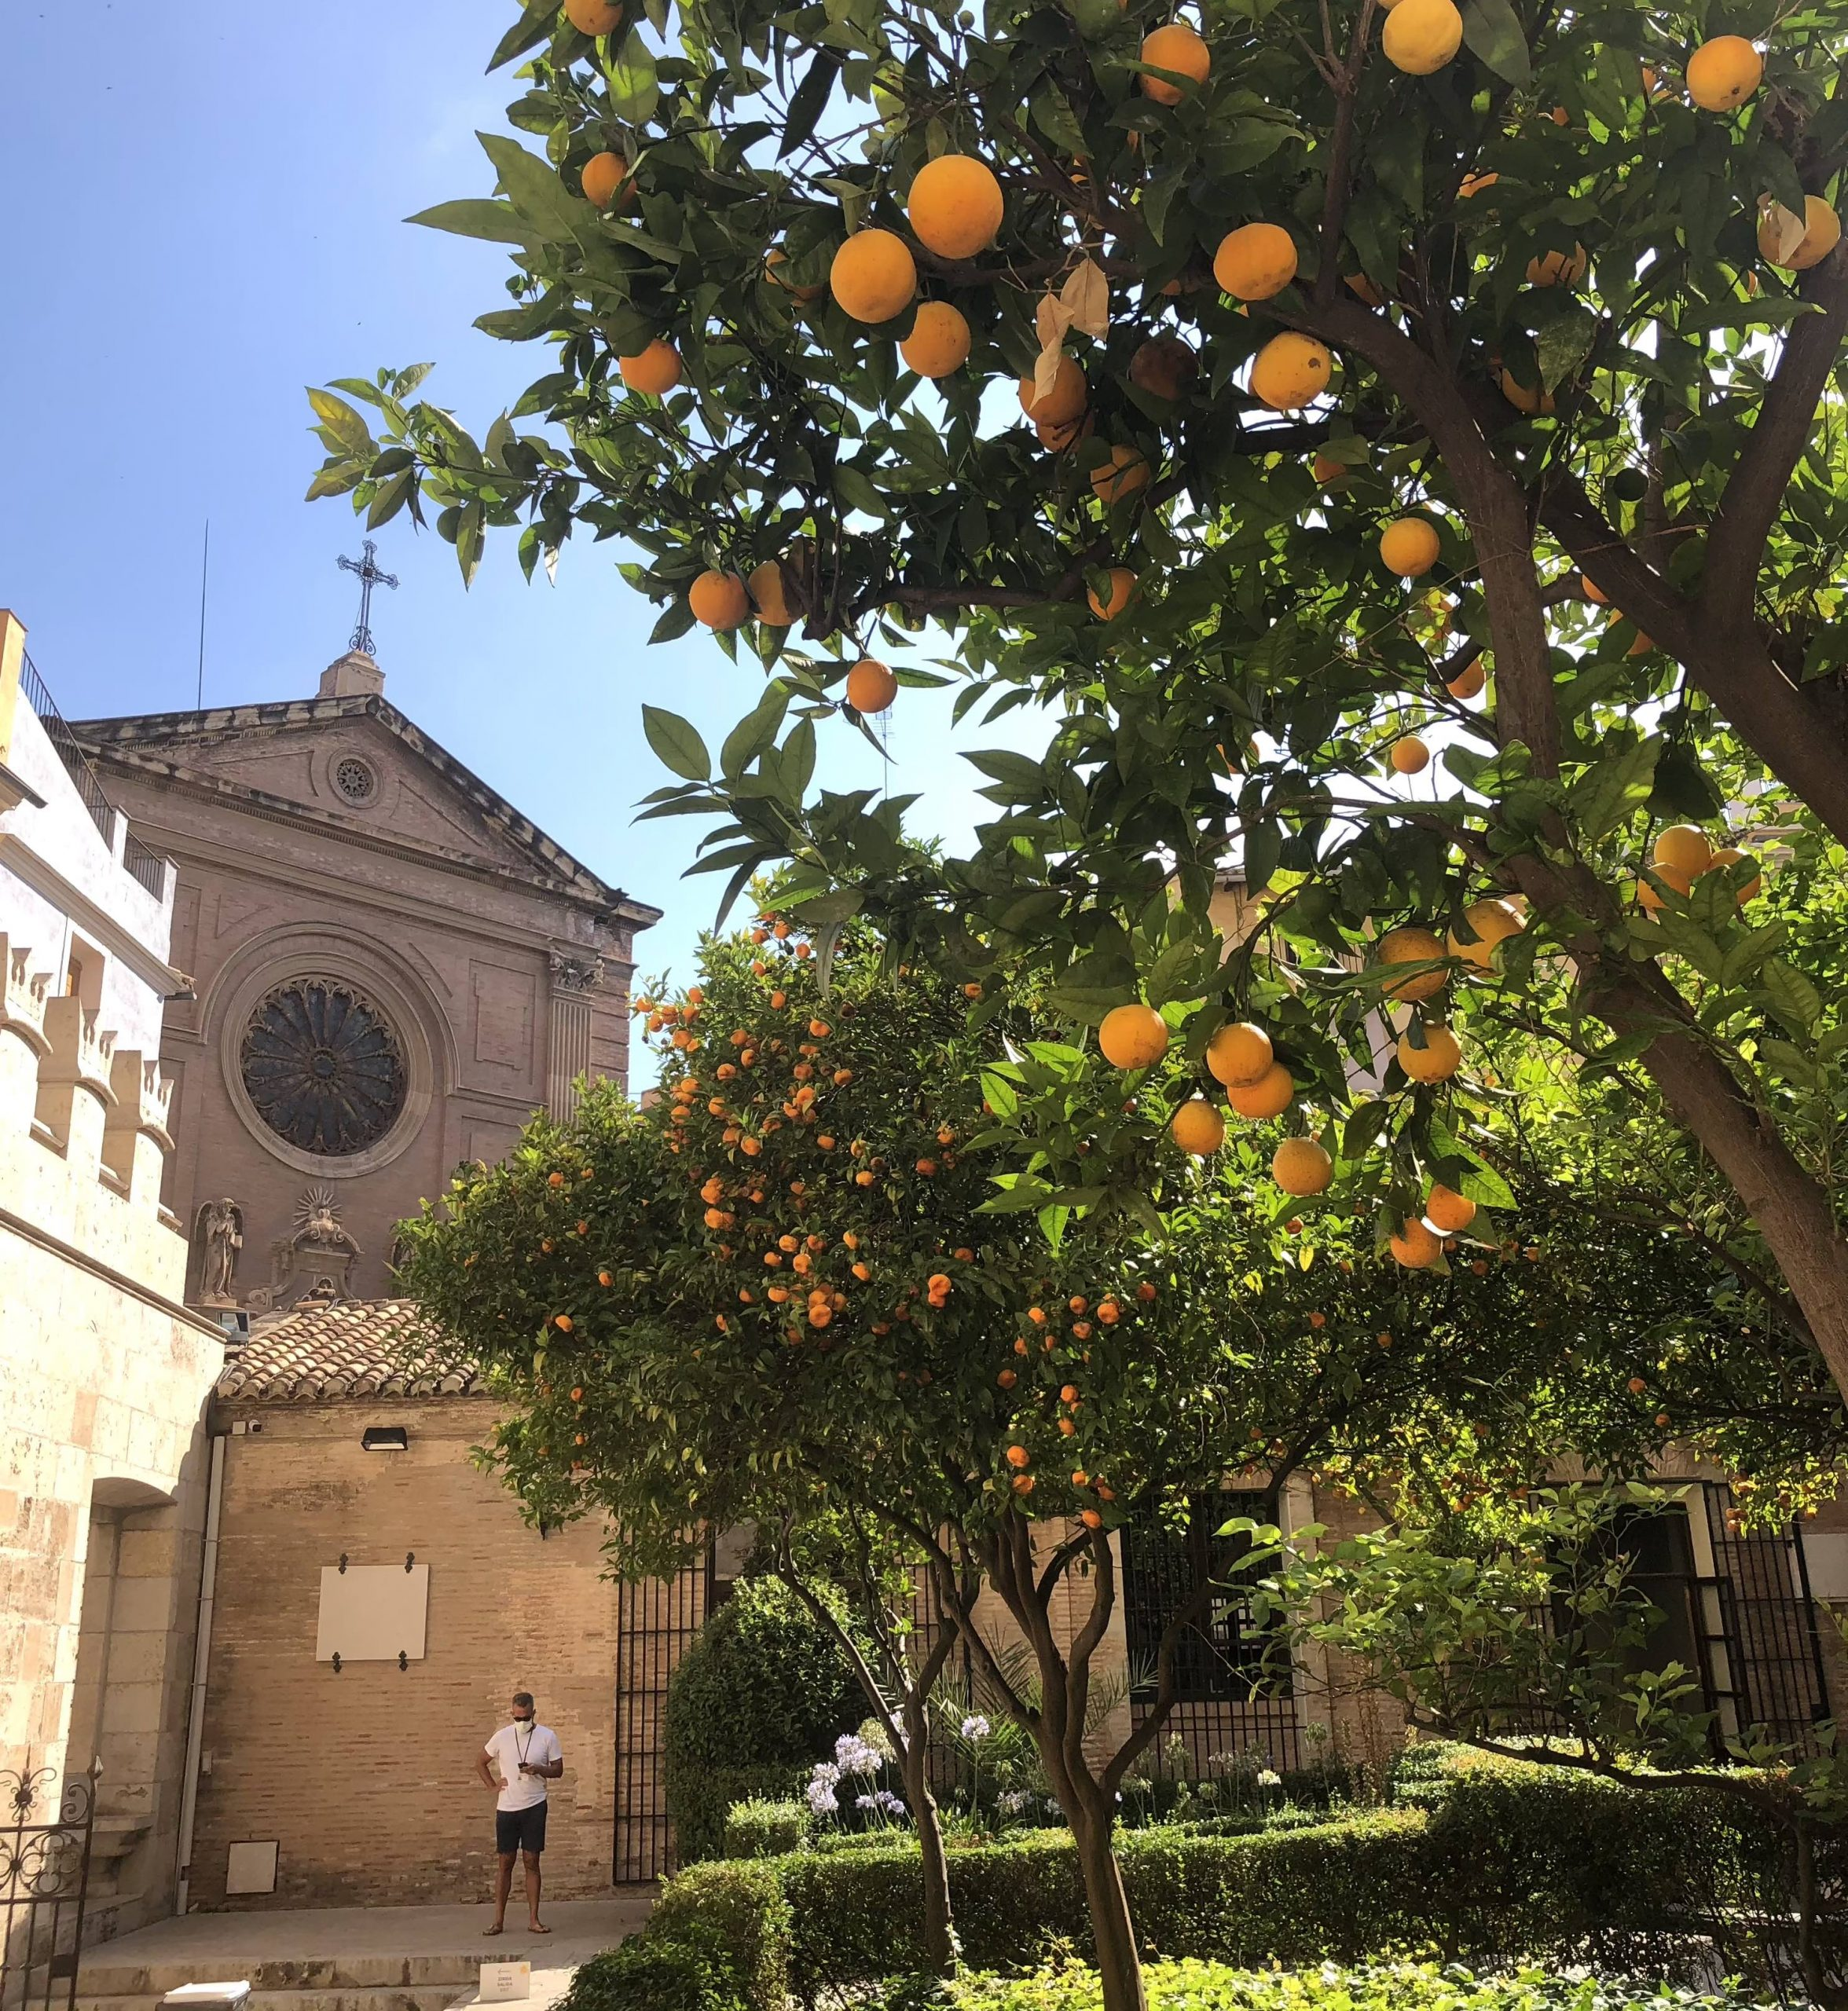 orange trees in La Lonja